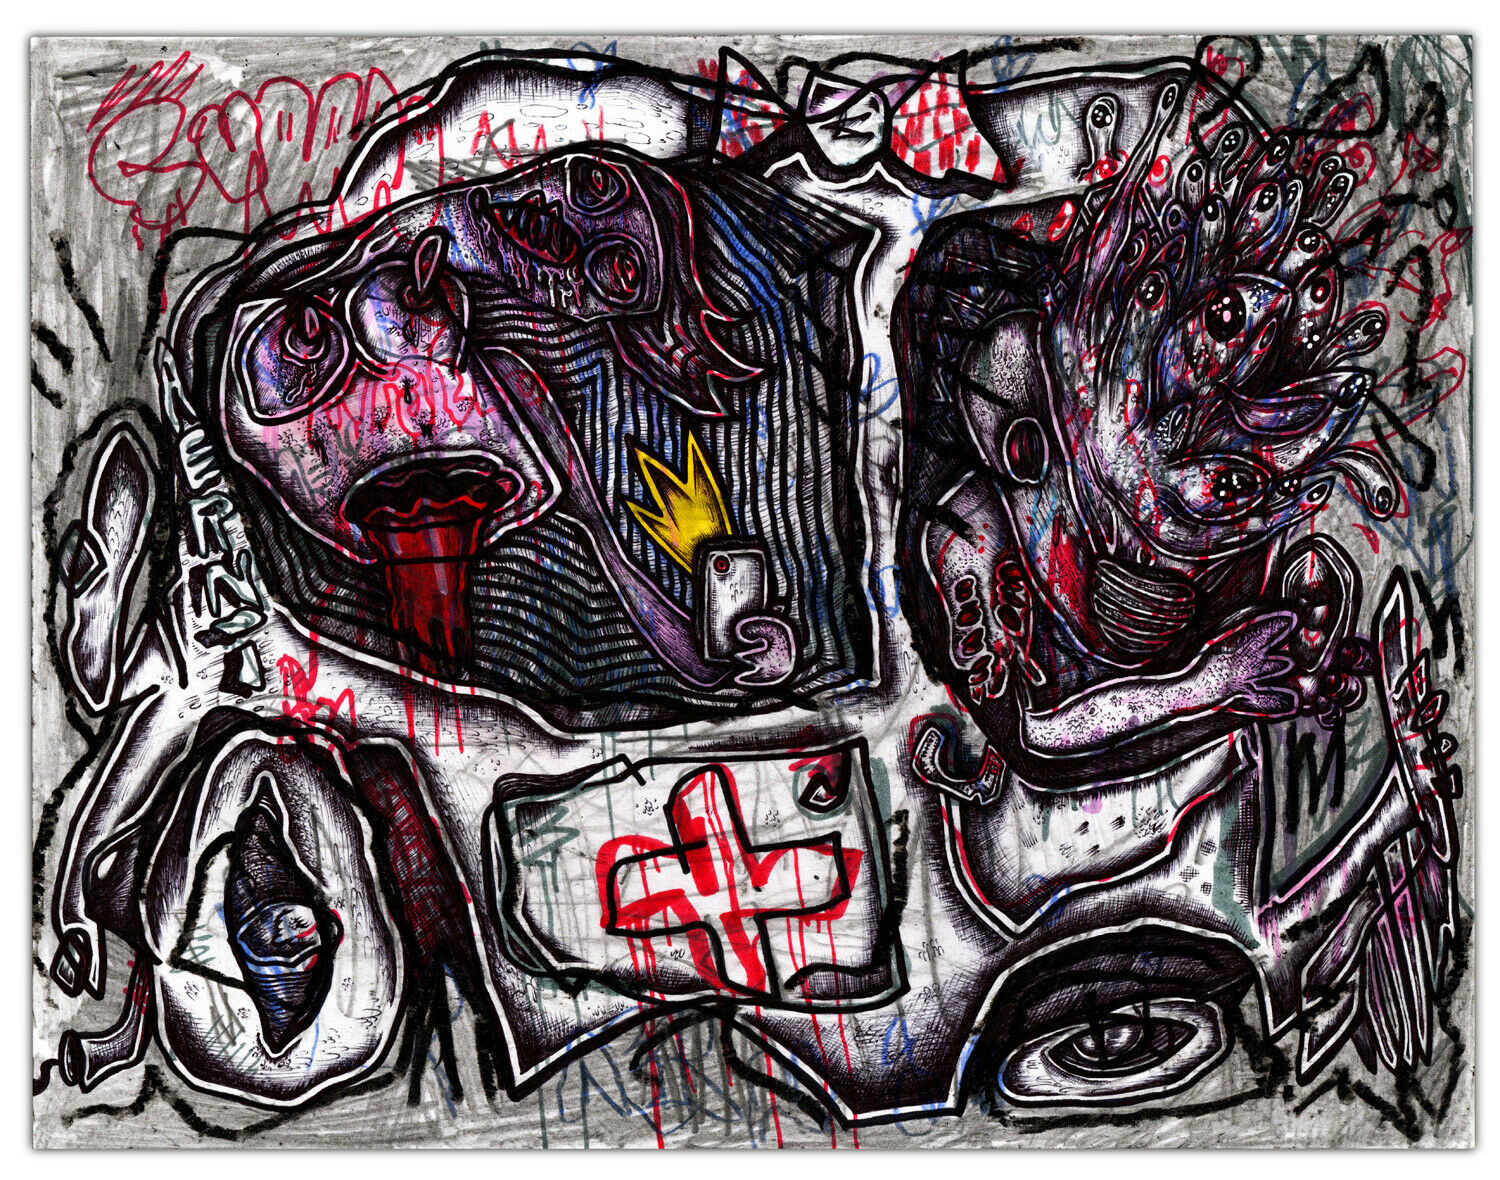 Outsider artist Justin Aerni talks about thriving in the current chaos